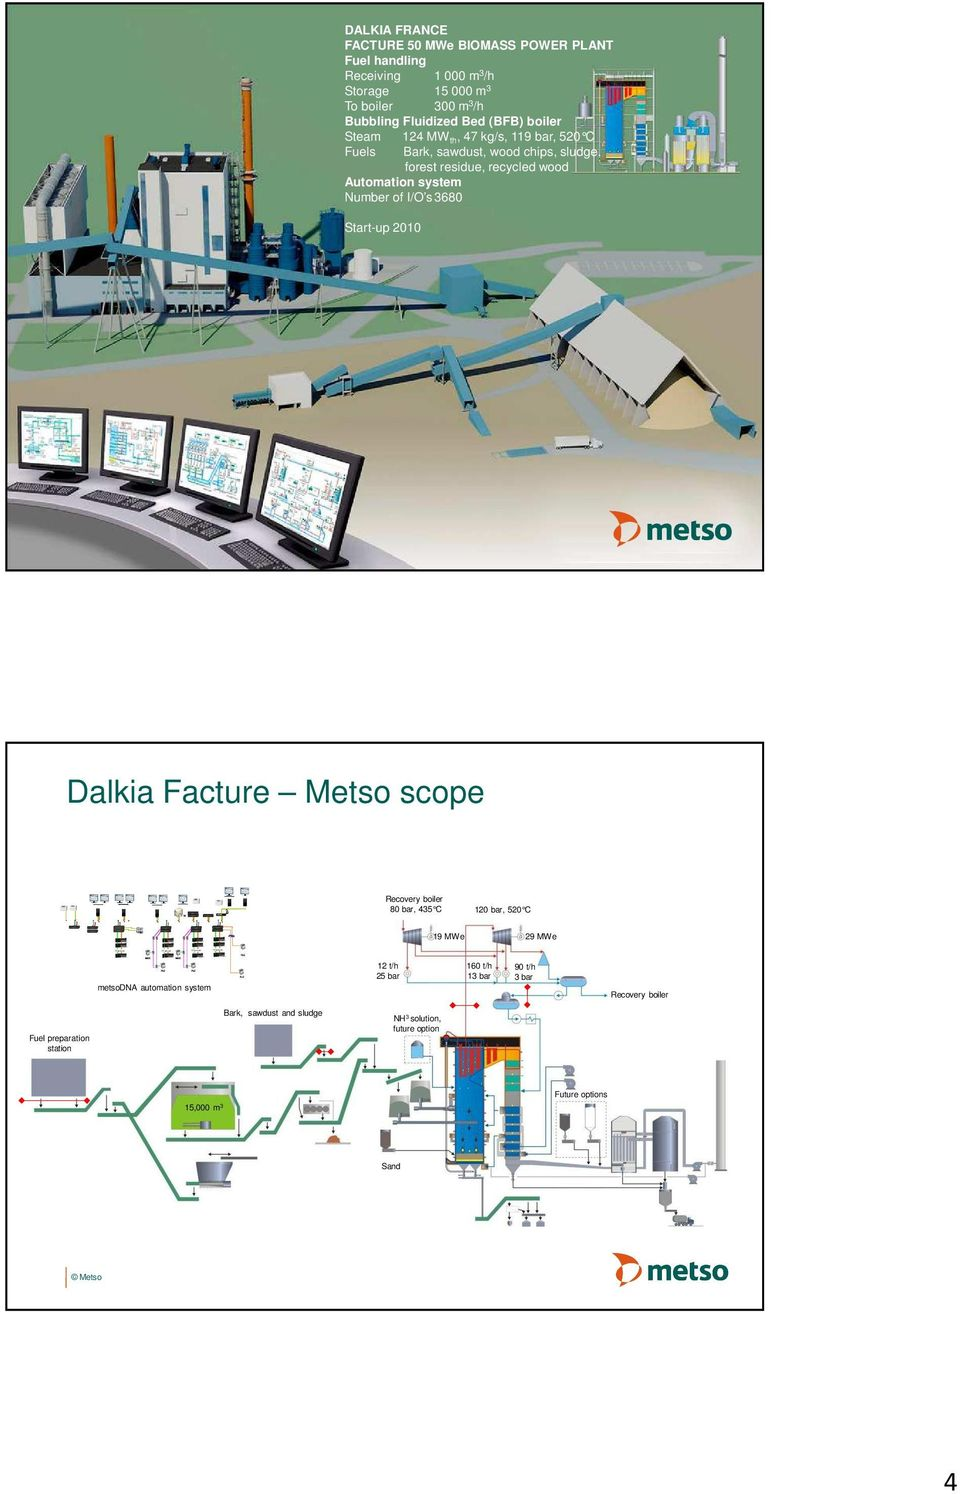 system Number of I/O s3680 Start-up 2010 Dalkia Facture Metso scope Recovery boiler 80 bar, 435 C 120 bar, 520 C 19 MWe 29 MWe metsodna automation system 12